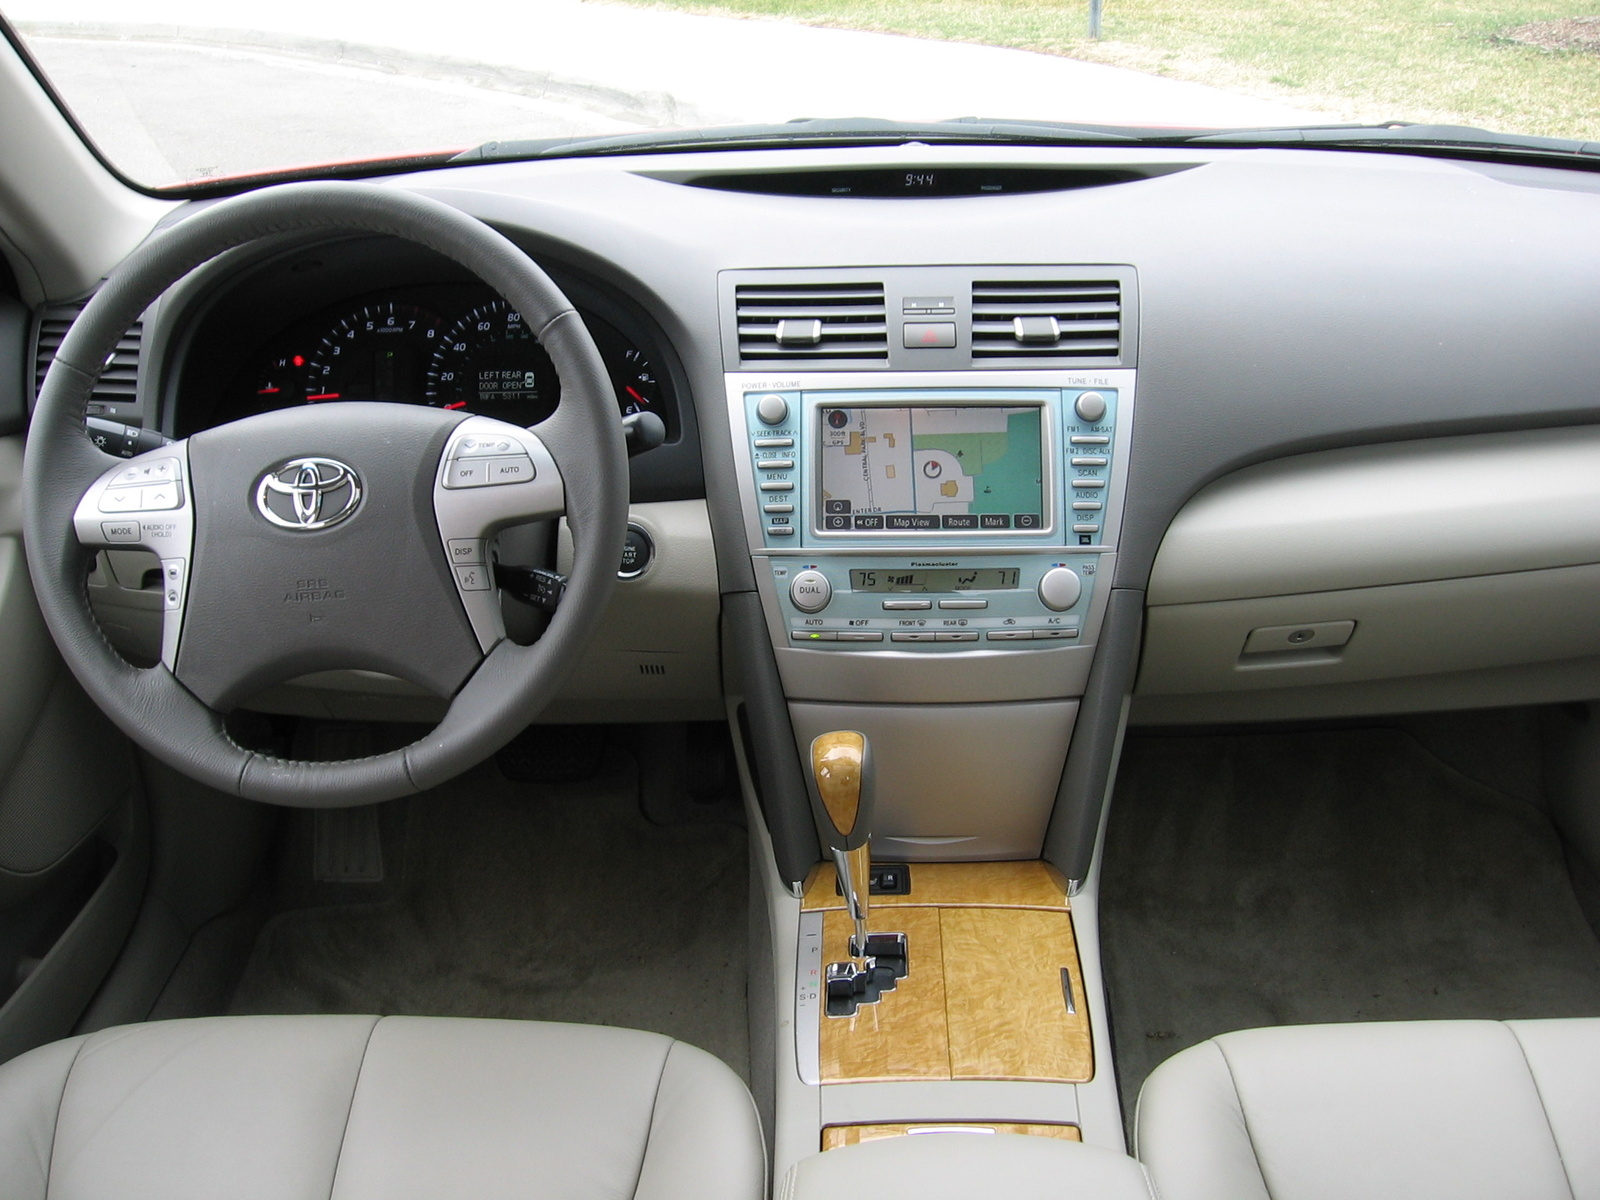 2008 toyota camry interior pictures cargurus. Black Bedroom Furniture Sets. Home Design Ideas